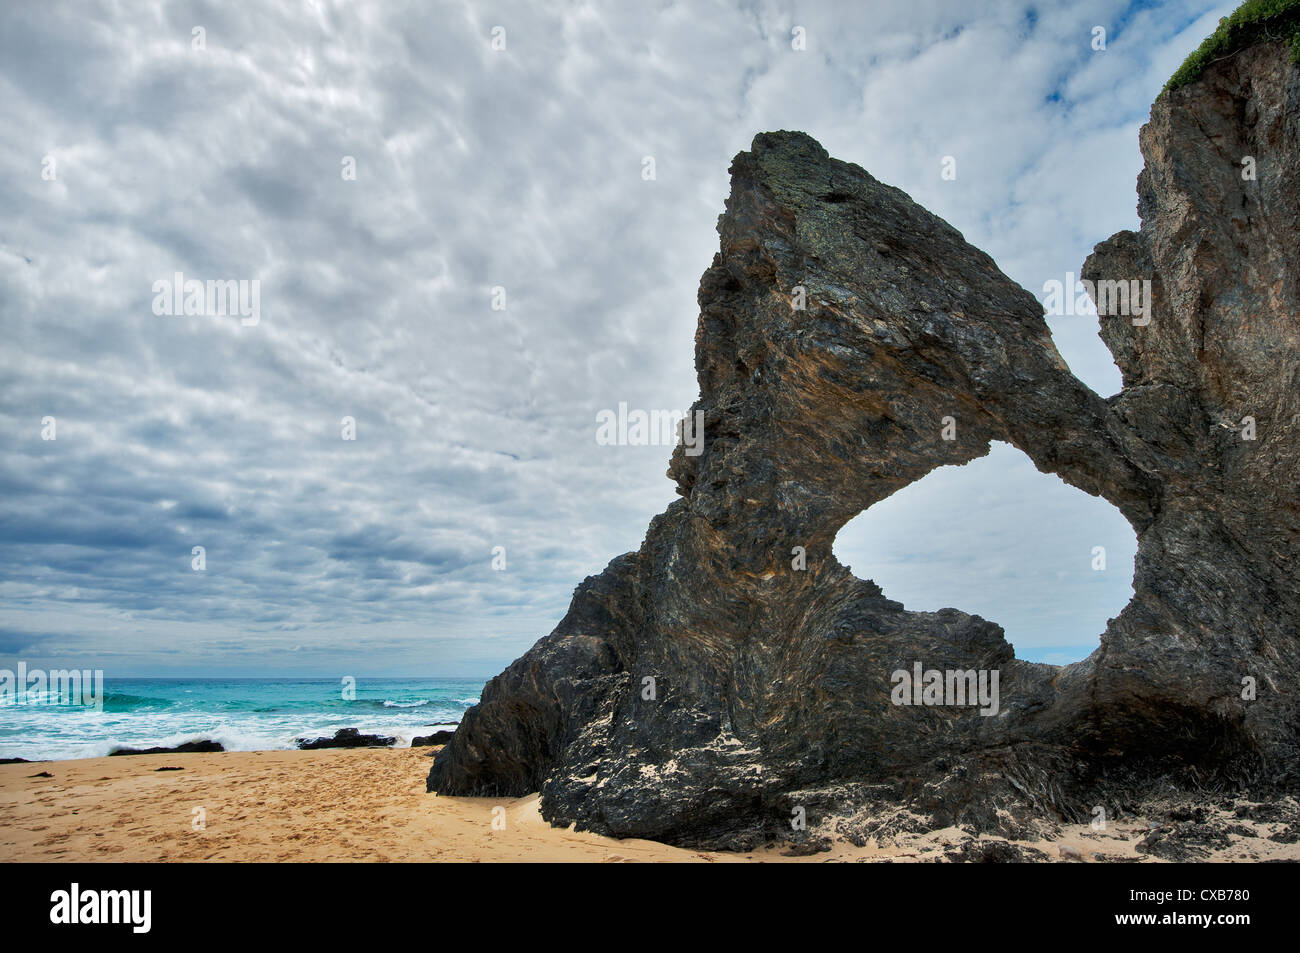 Australien-Rock am Strand Narooma. Stockbild